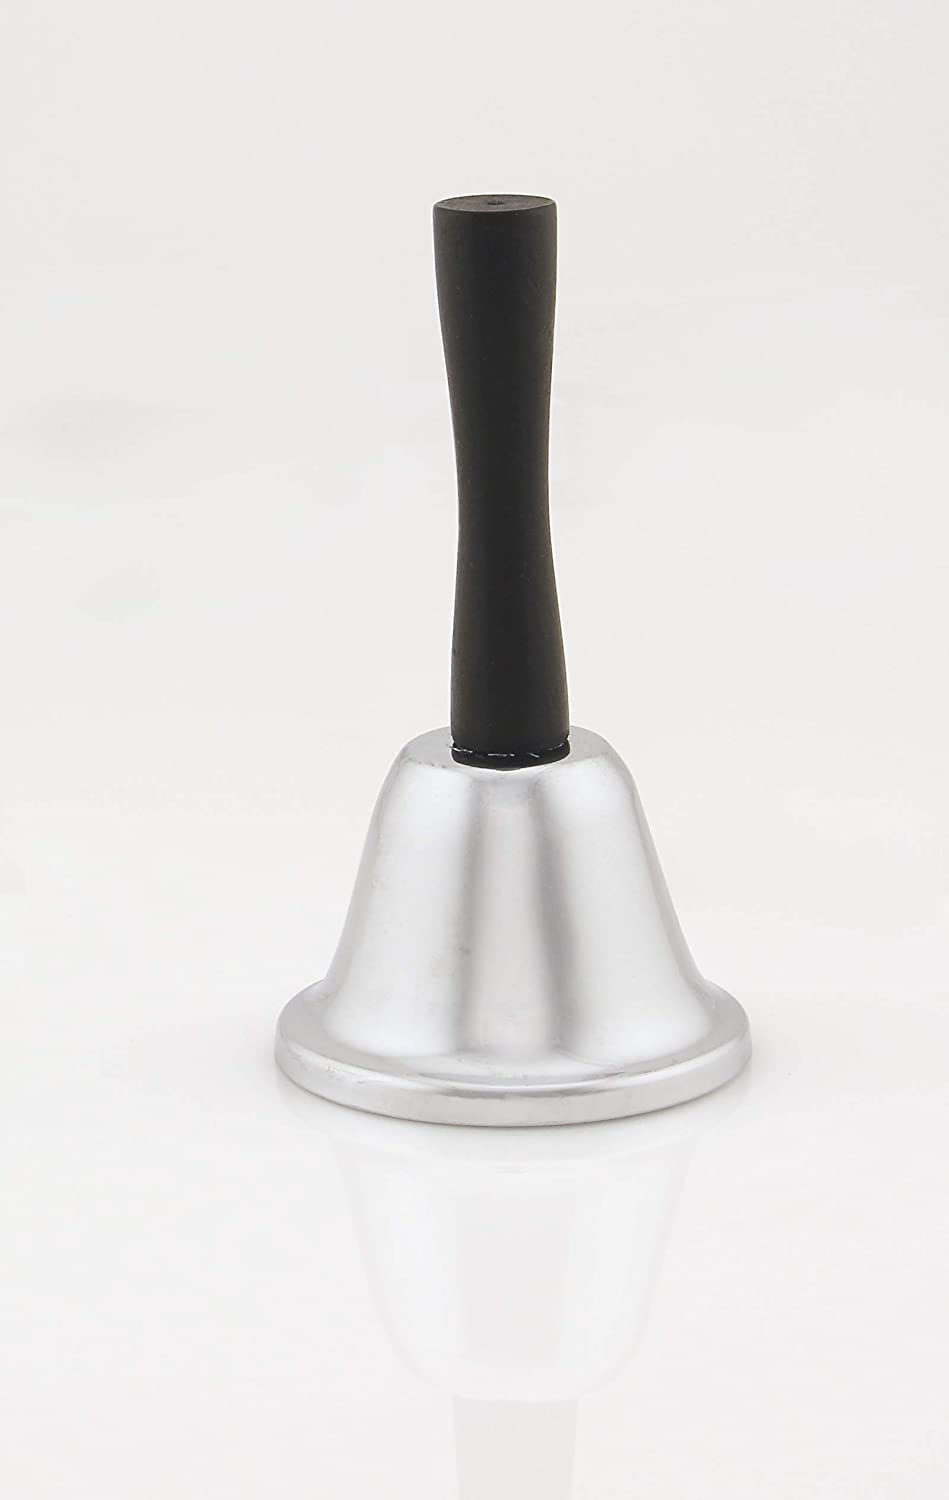 Hygloss Products Classroom Hand Bells Incentives Supply (61501) Inc.